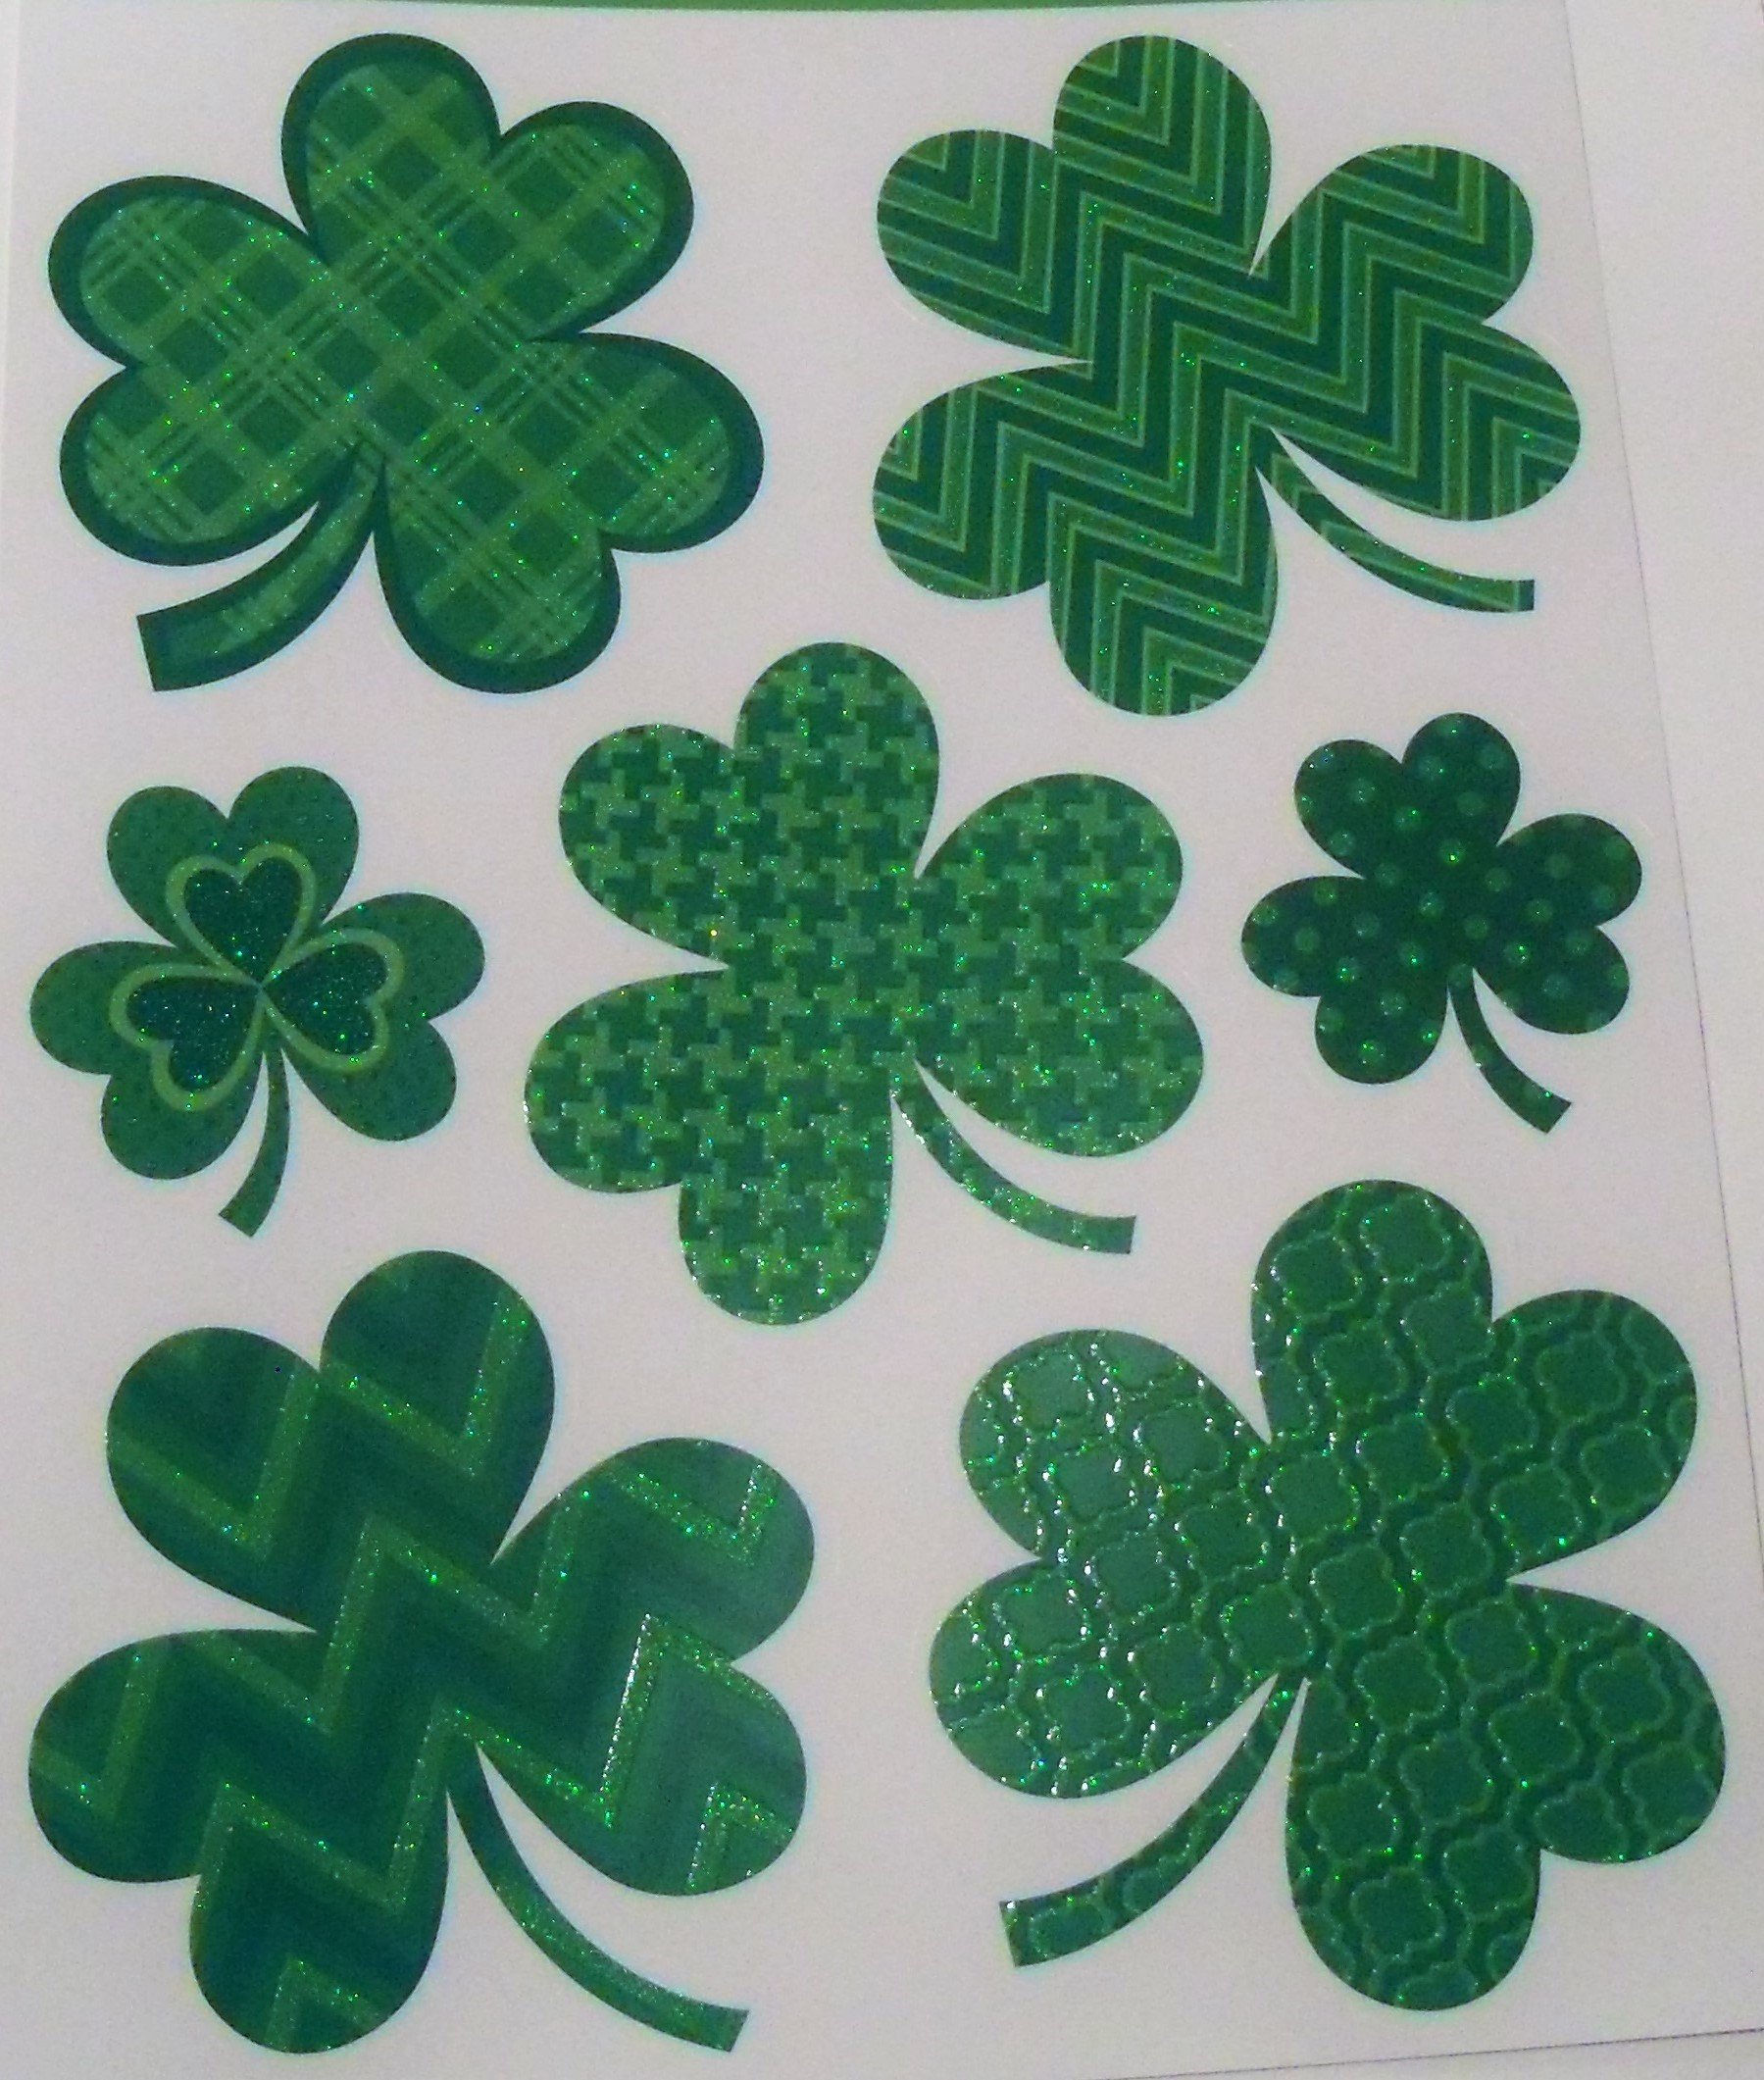 St. Patrick's Day Reusable Glitter Window Clings ~ Patterned Shamrocks (7 Clings, 1 Sheet)